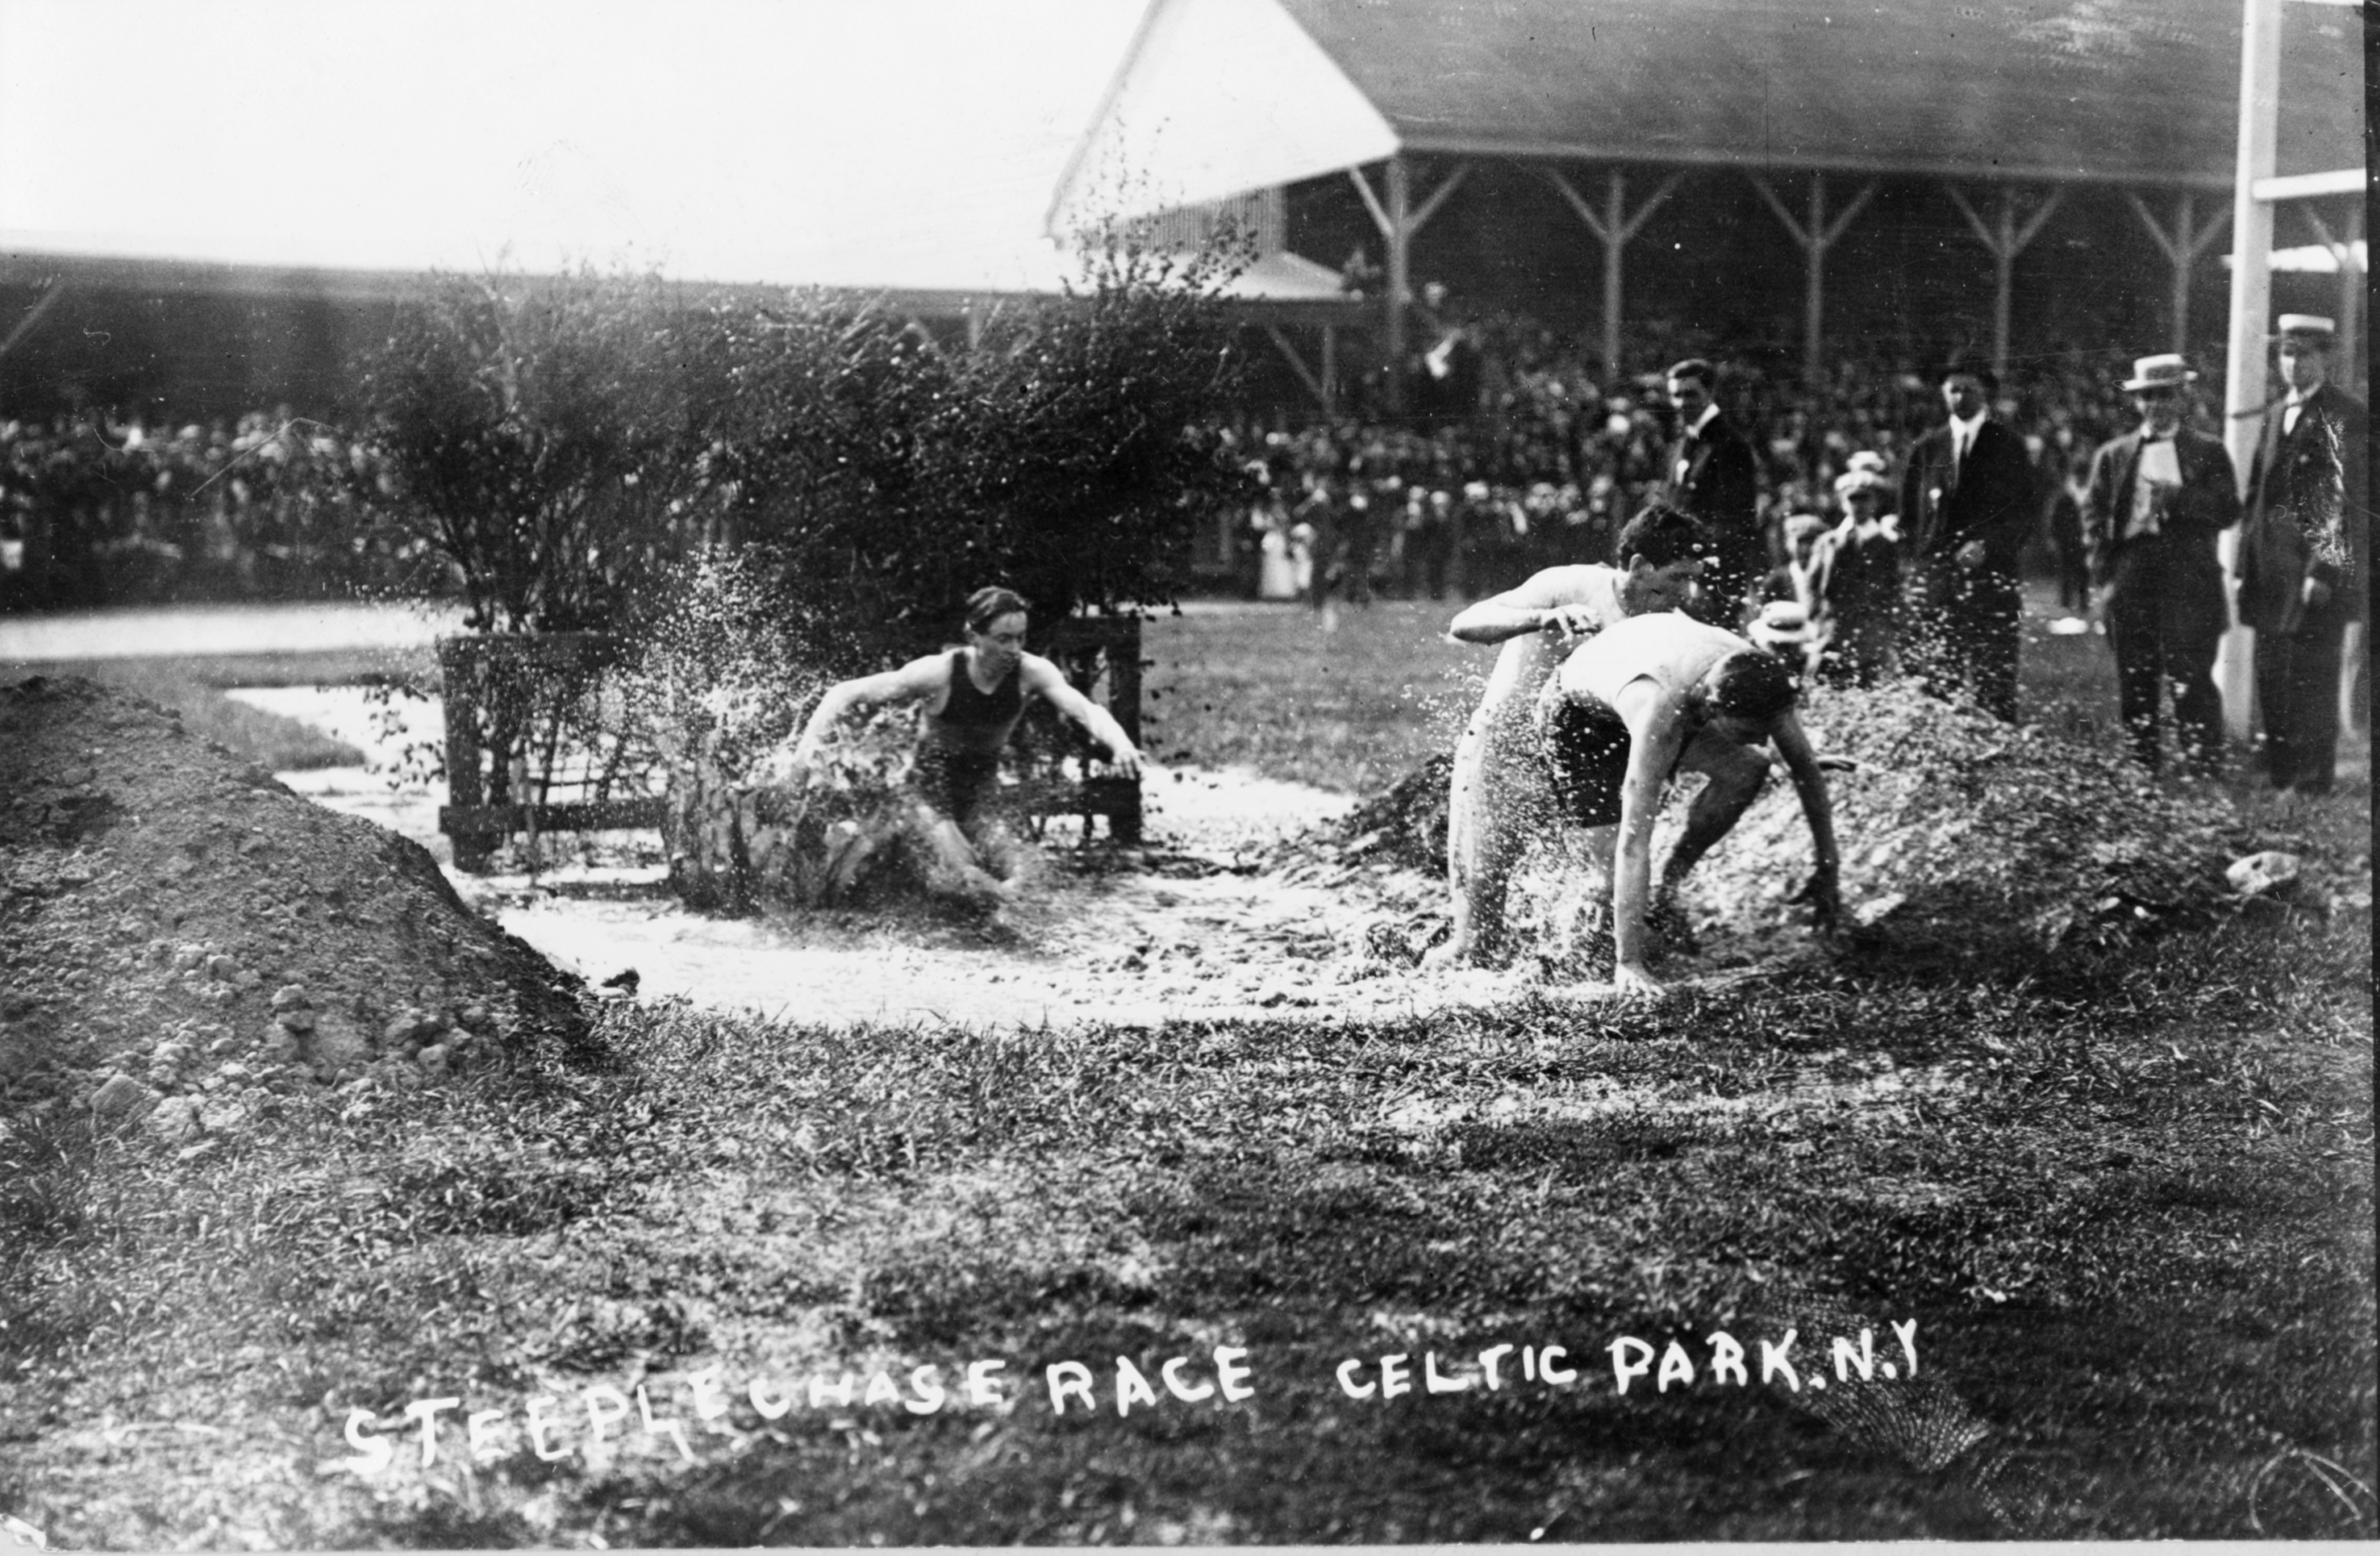 File steeplechase race celtic park n y from bain for Steeple chase